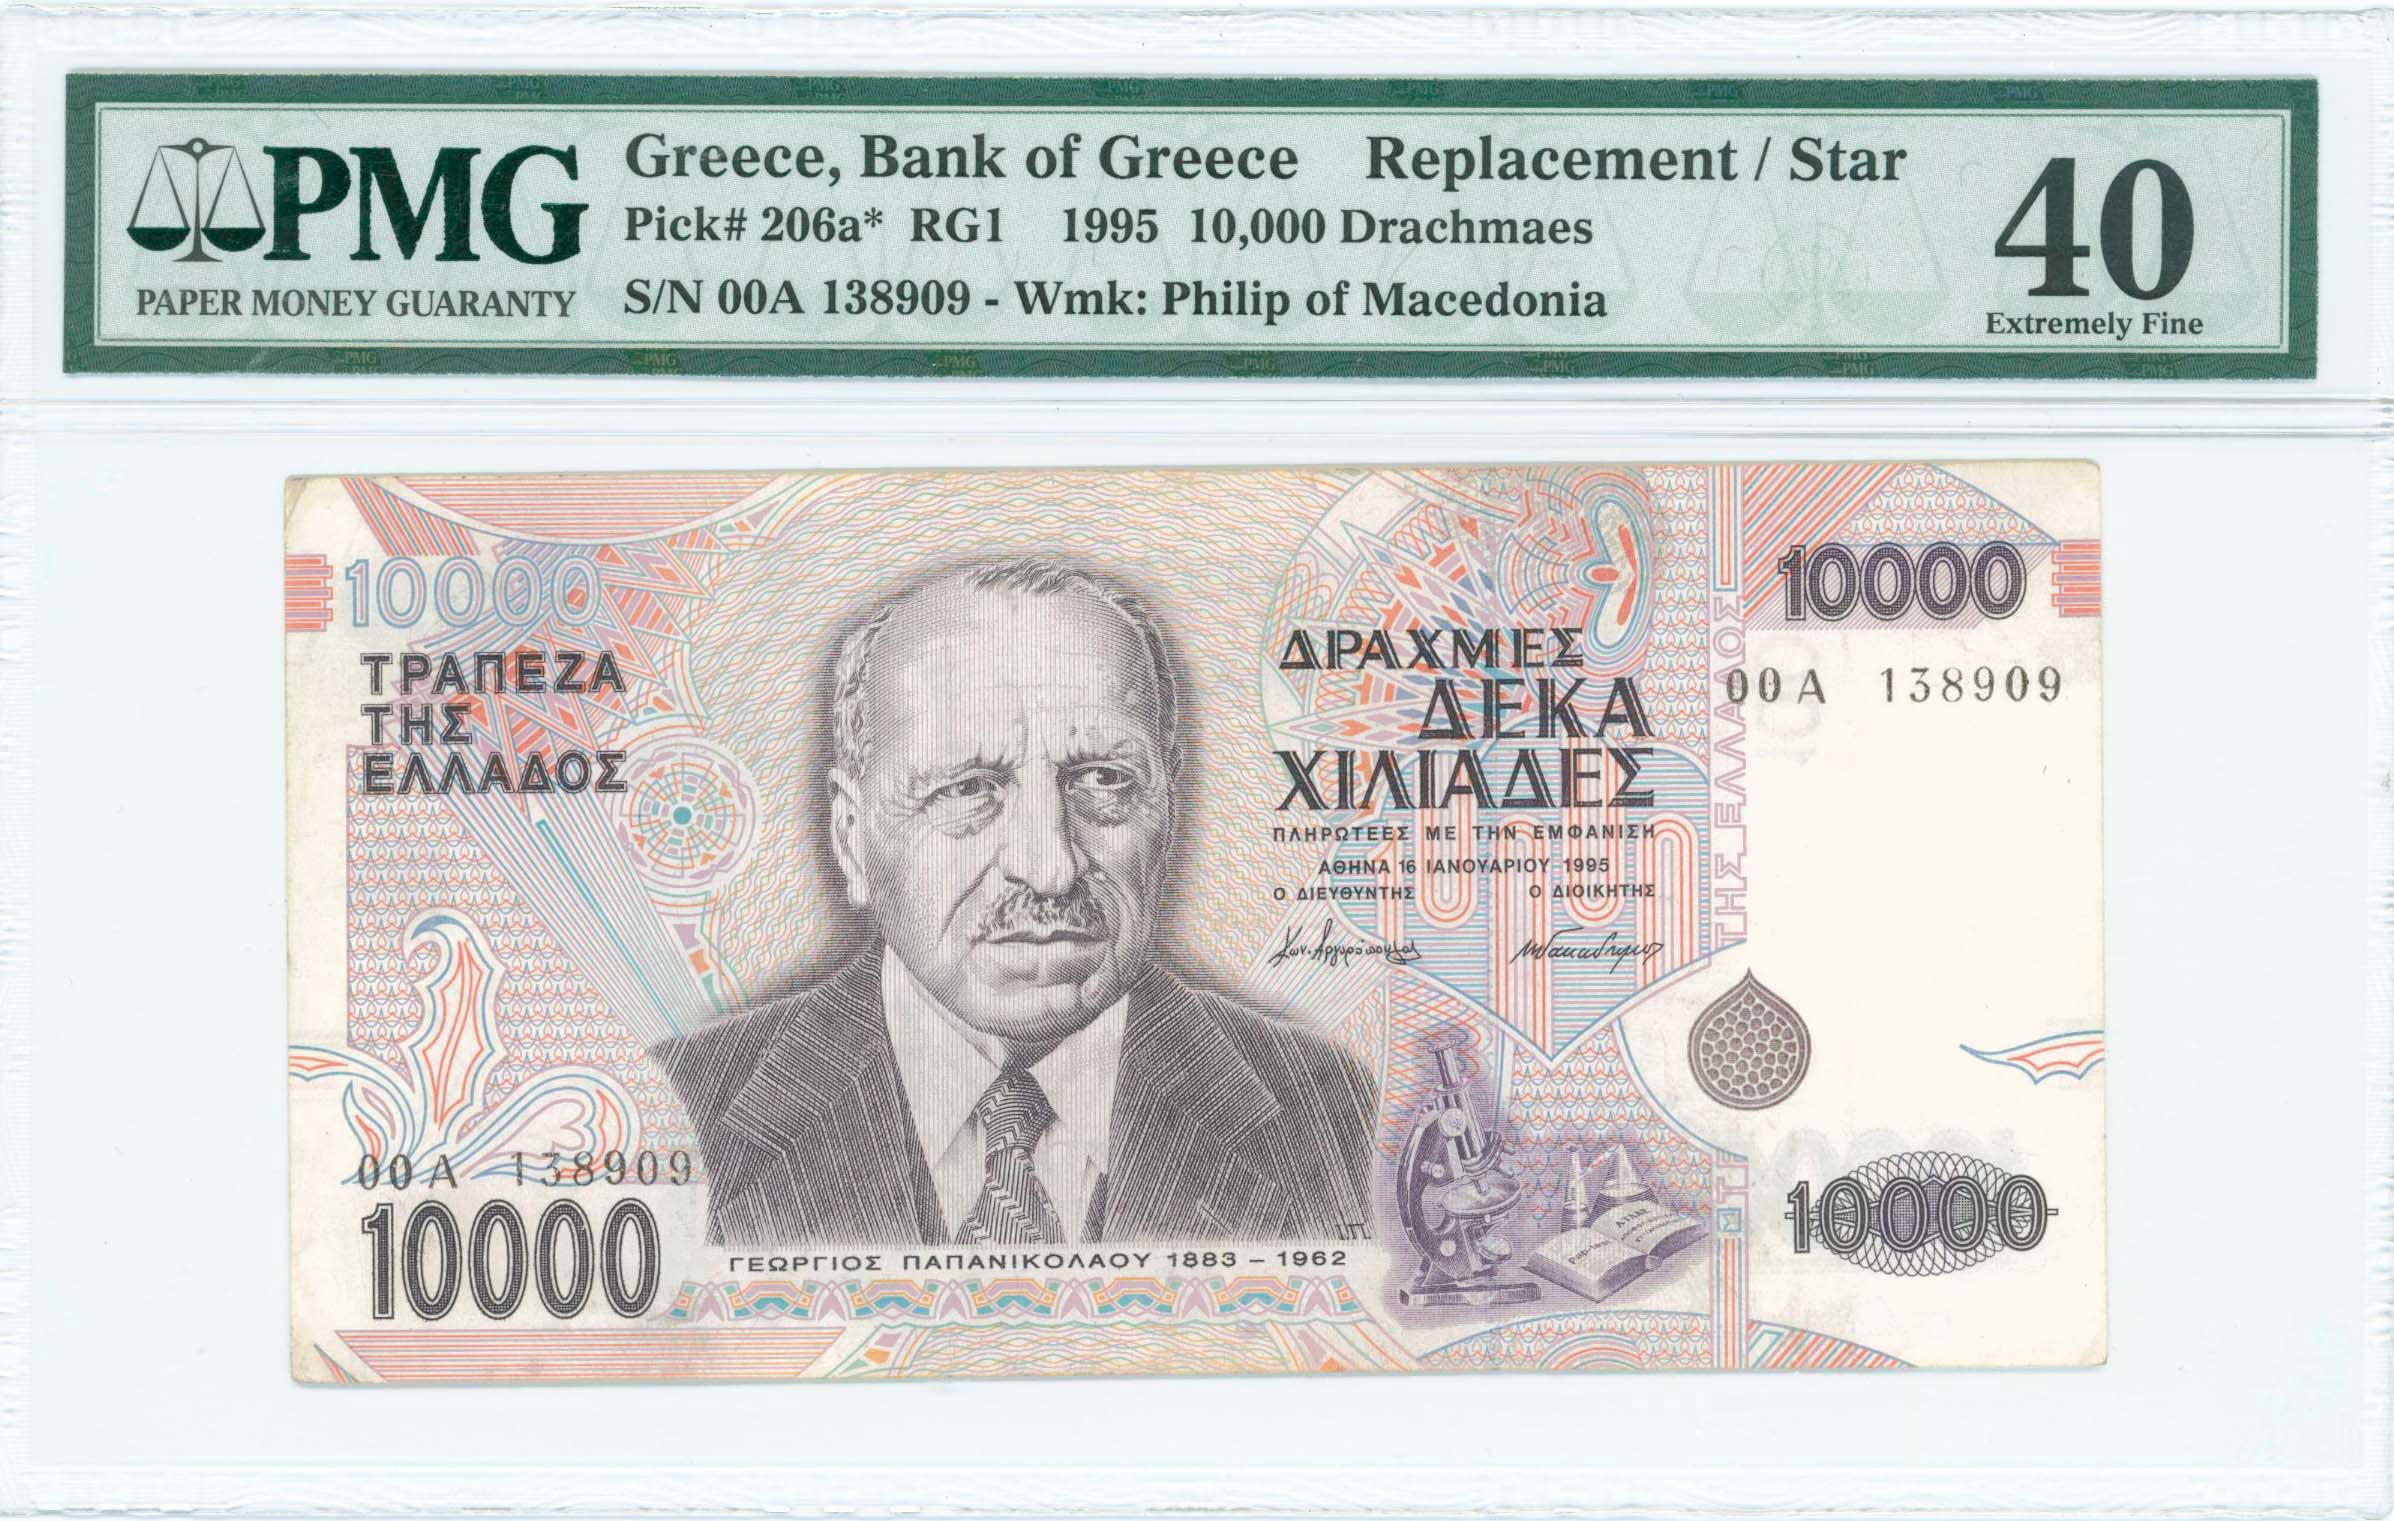 Lot 6619 - -  PAPER MONEY - BANKNOTES BANK OF GREECE AFTER WWII -  A. Karamitsos Public & Live Internet Auction 671 (Part A)